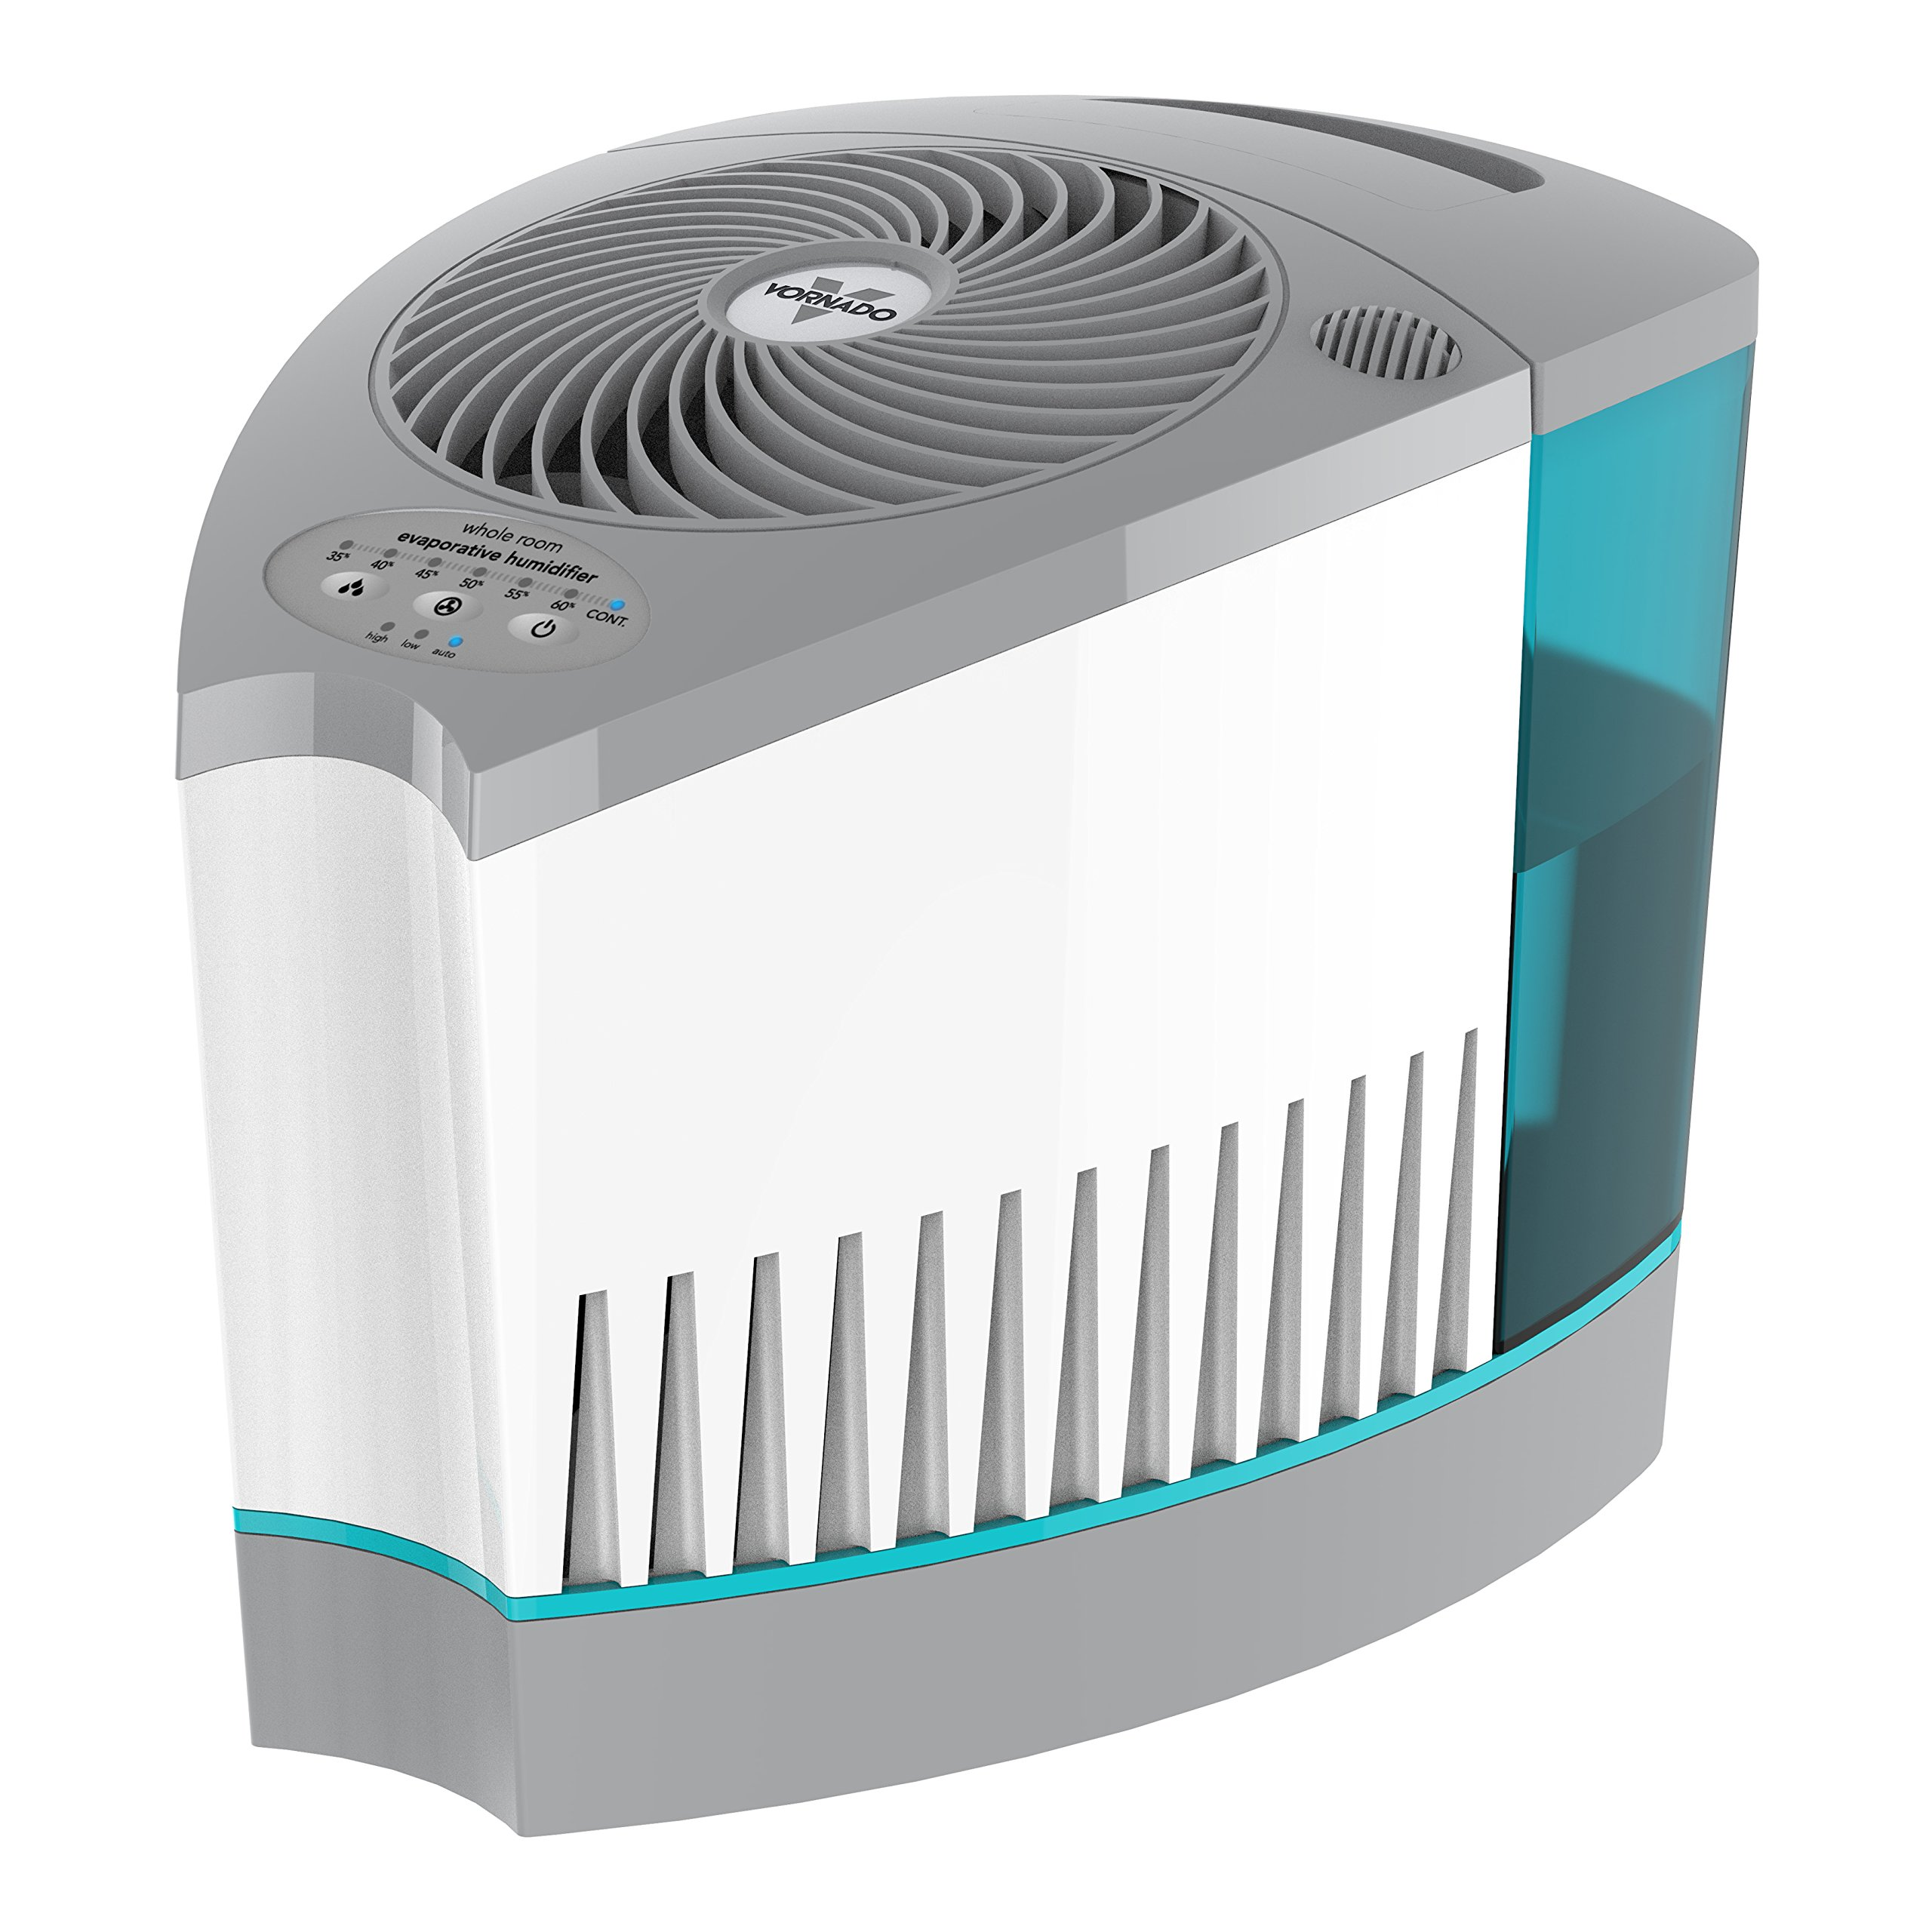 Vornado EVAP3 Whole Room Evaporative Humidifier White White eBay #2E949D